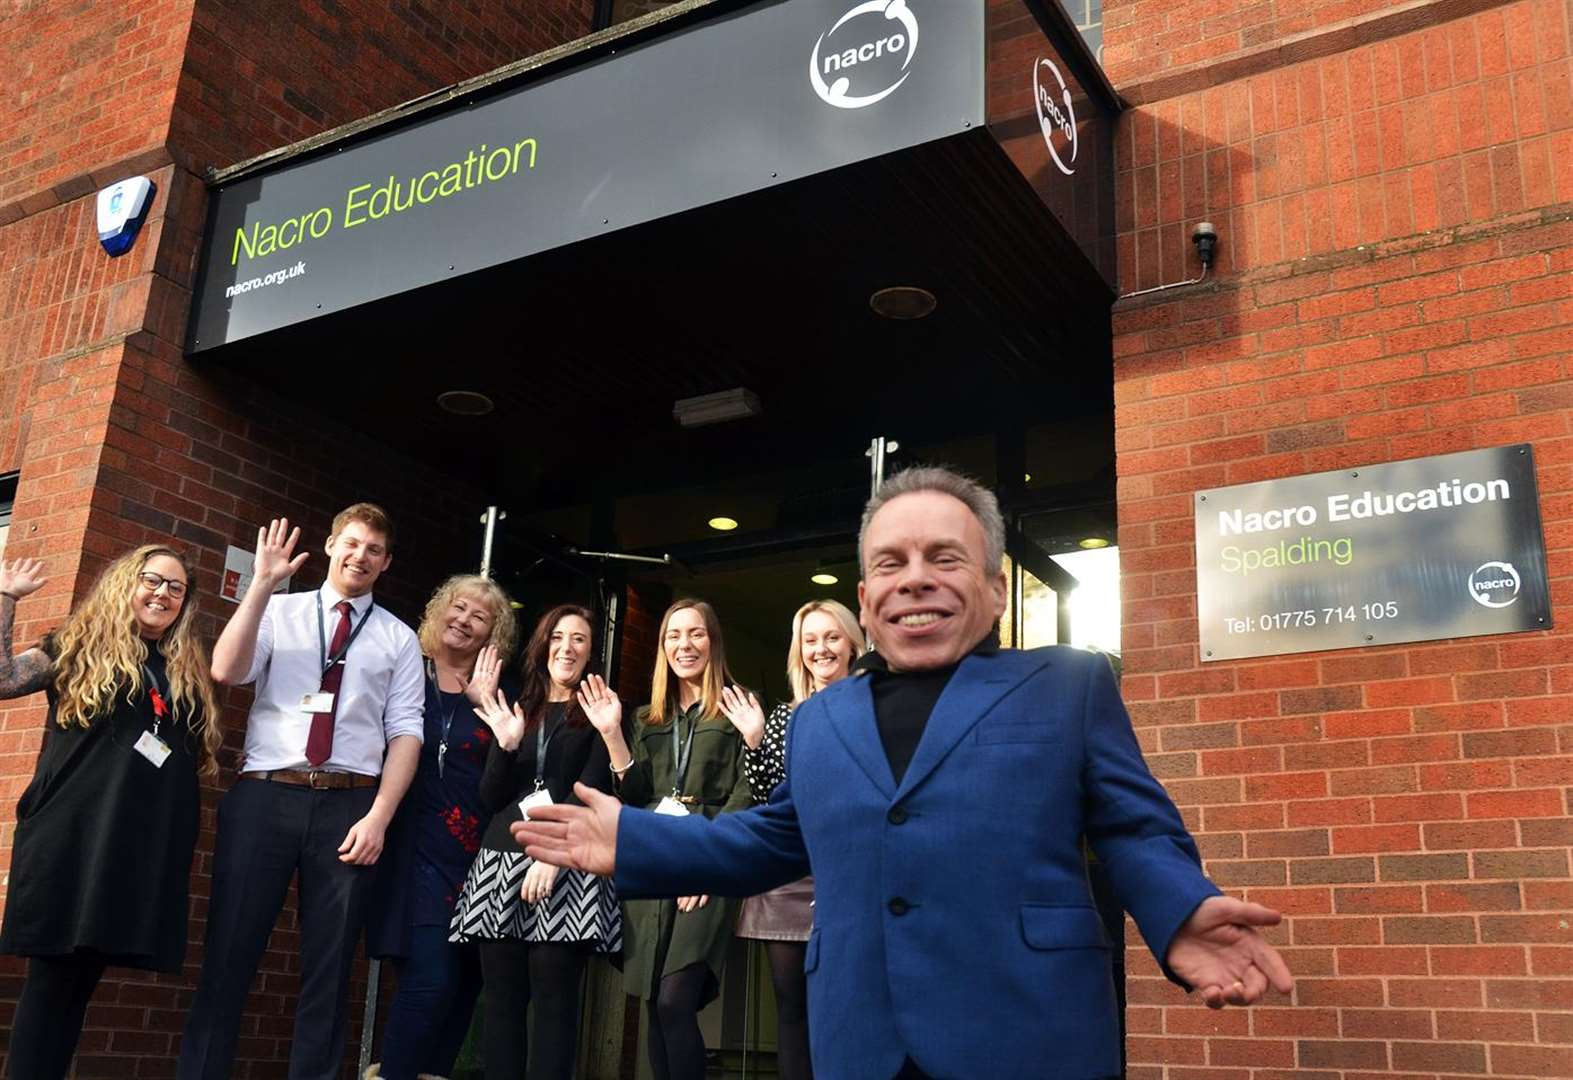 PICTURE SPECIAL: Harry Potter and Star Wars star Warwick visits new Nacro Education centre in Spalding